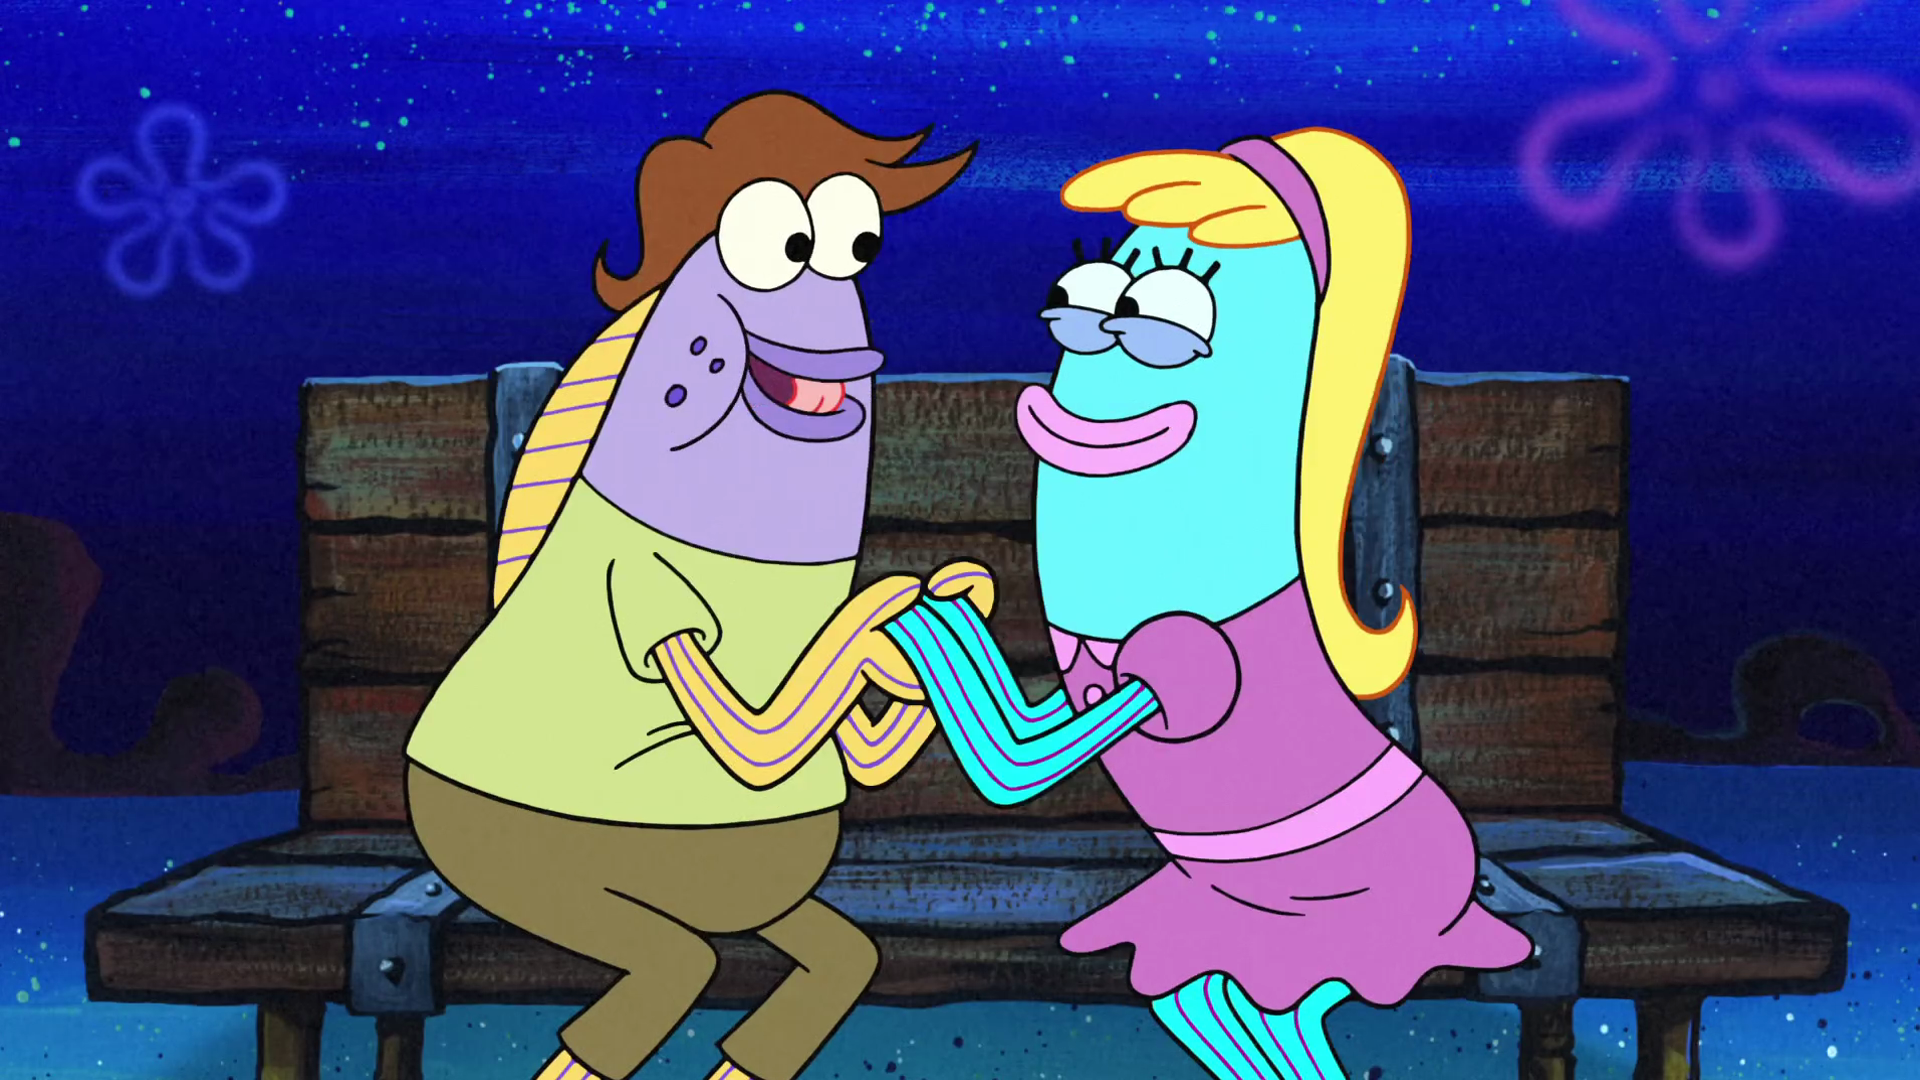 Squidward and sandy together